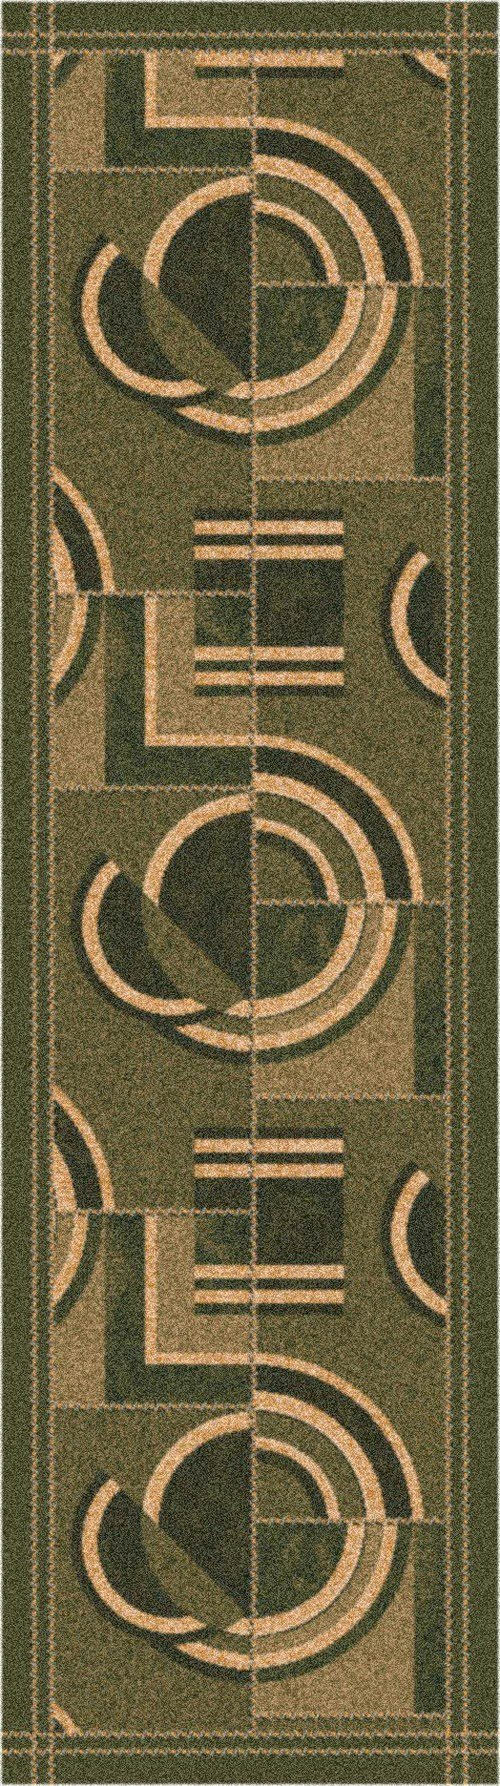 Deep Olive (77)  Contemporary / Modern Area Rug